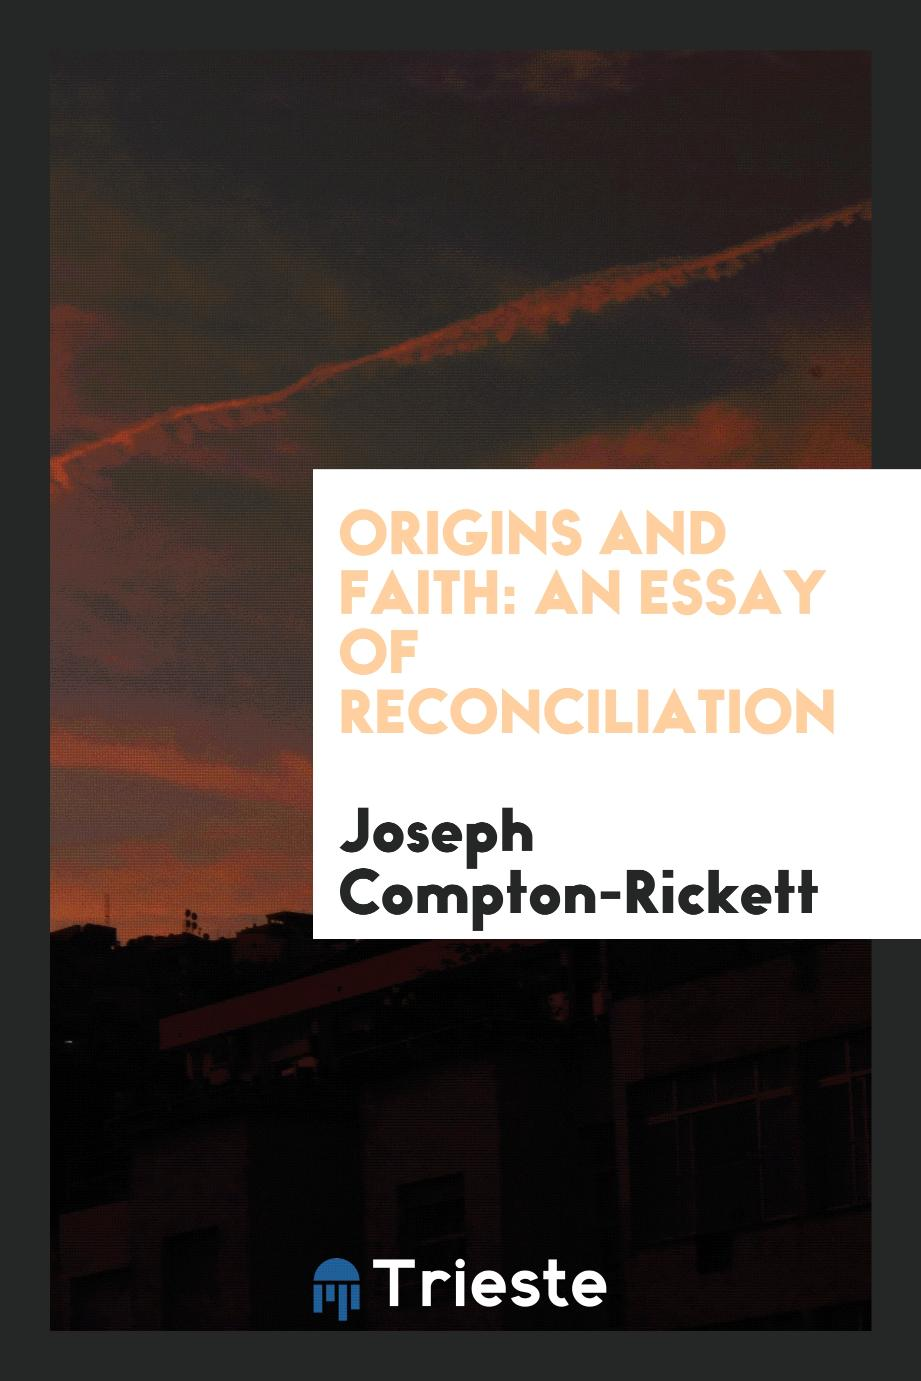 Origins and Faith: An Essay of Reconciliation